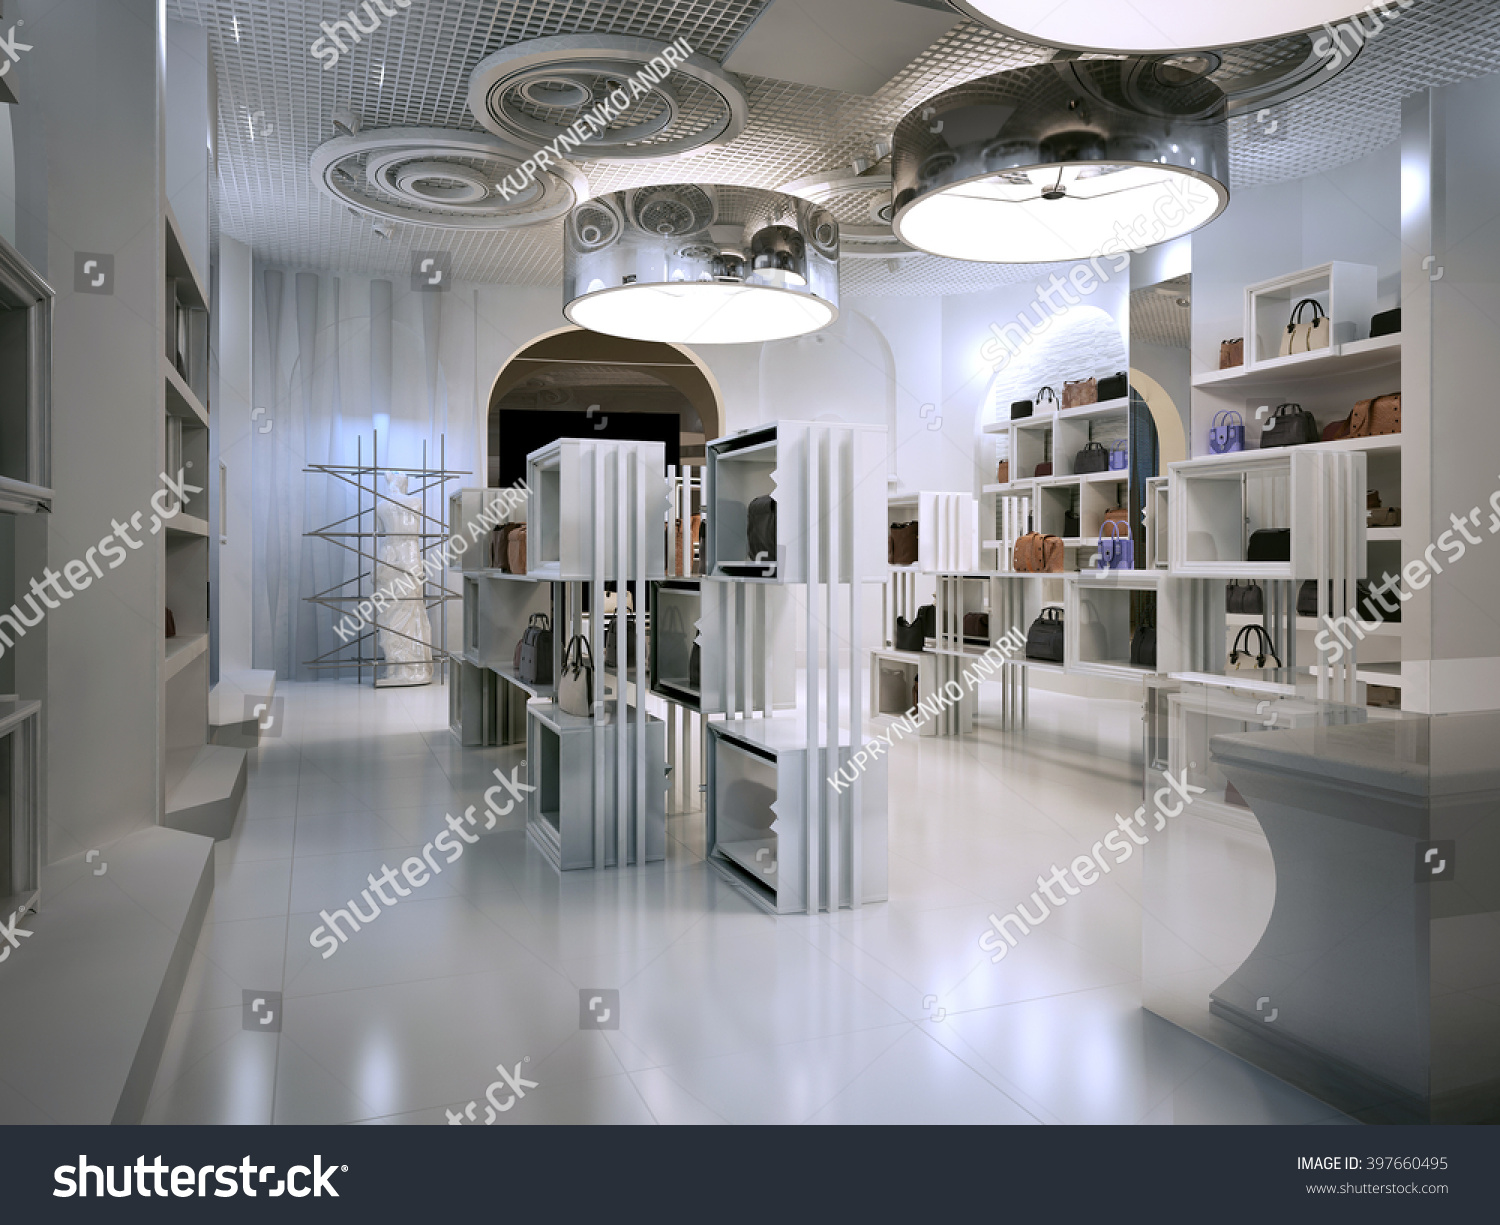 Luxury store interior design art deco style with hints of contemporary room white boutique with